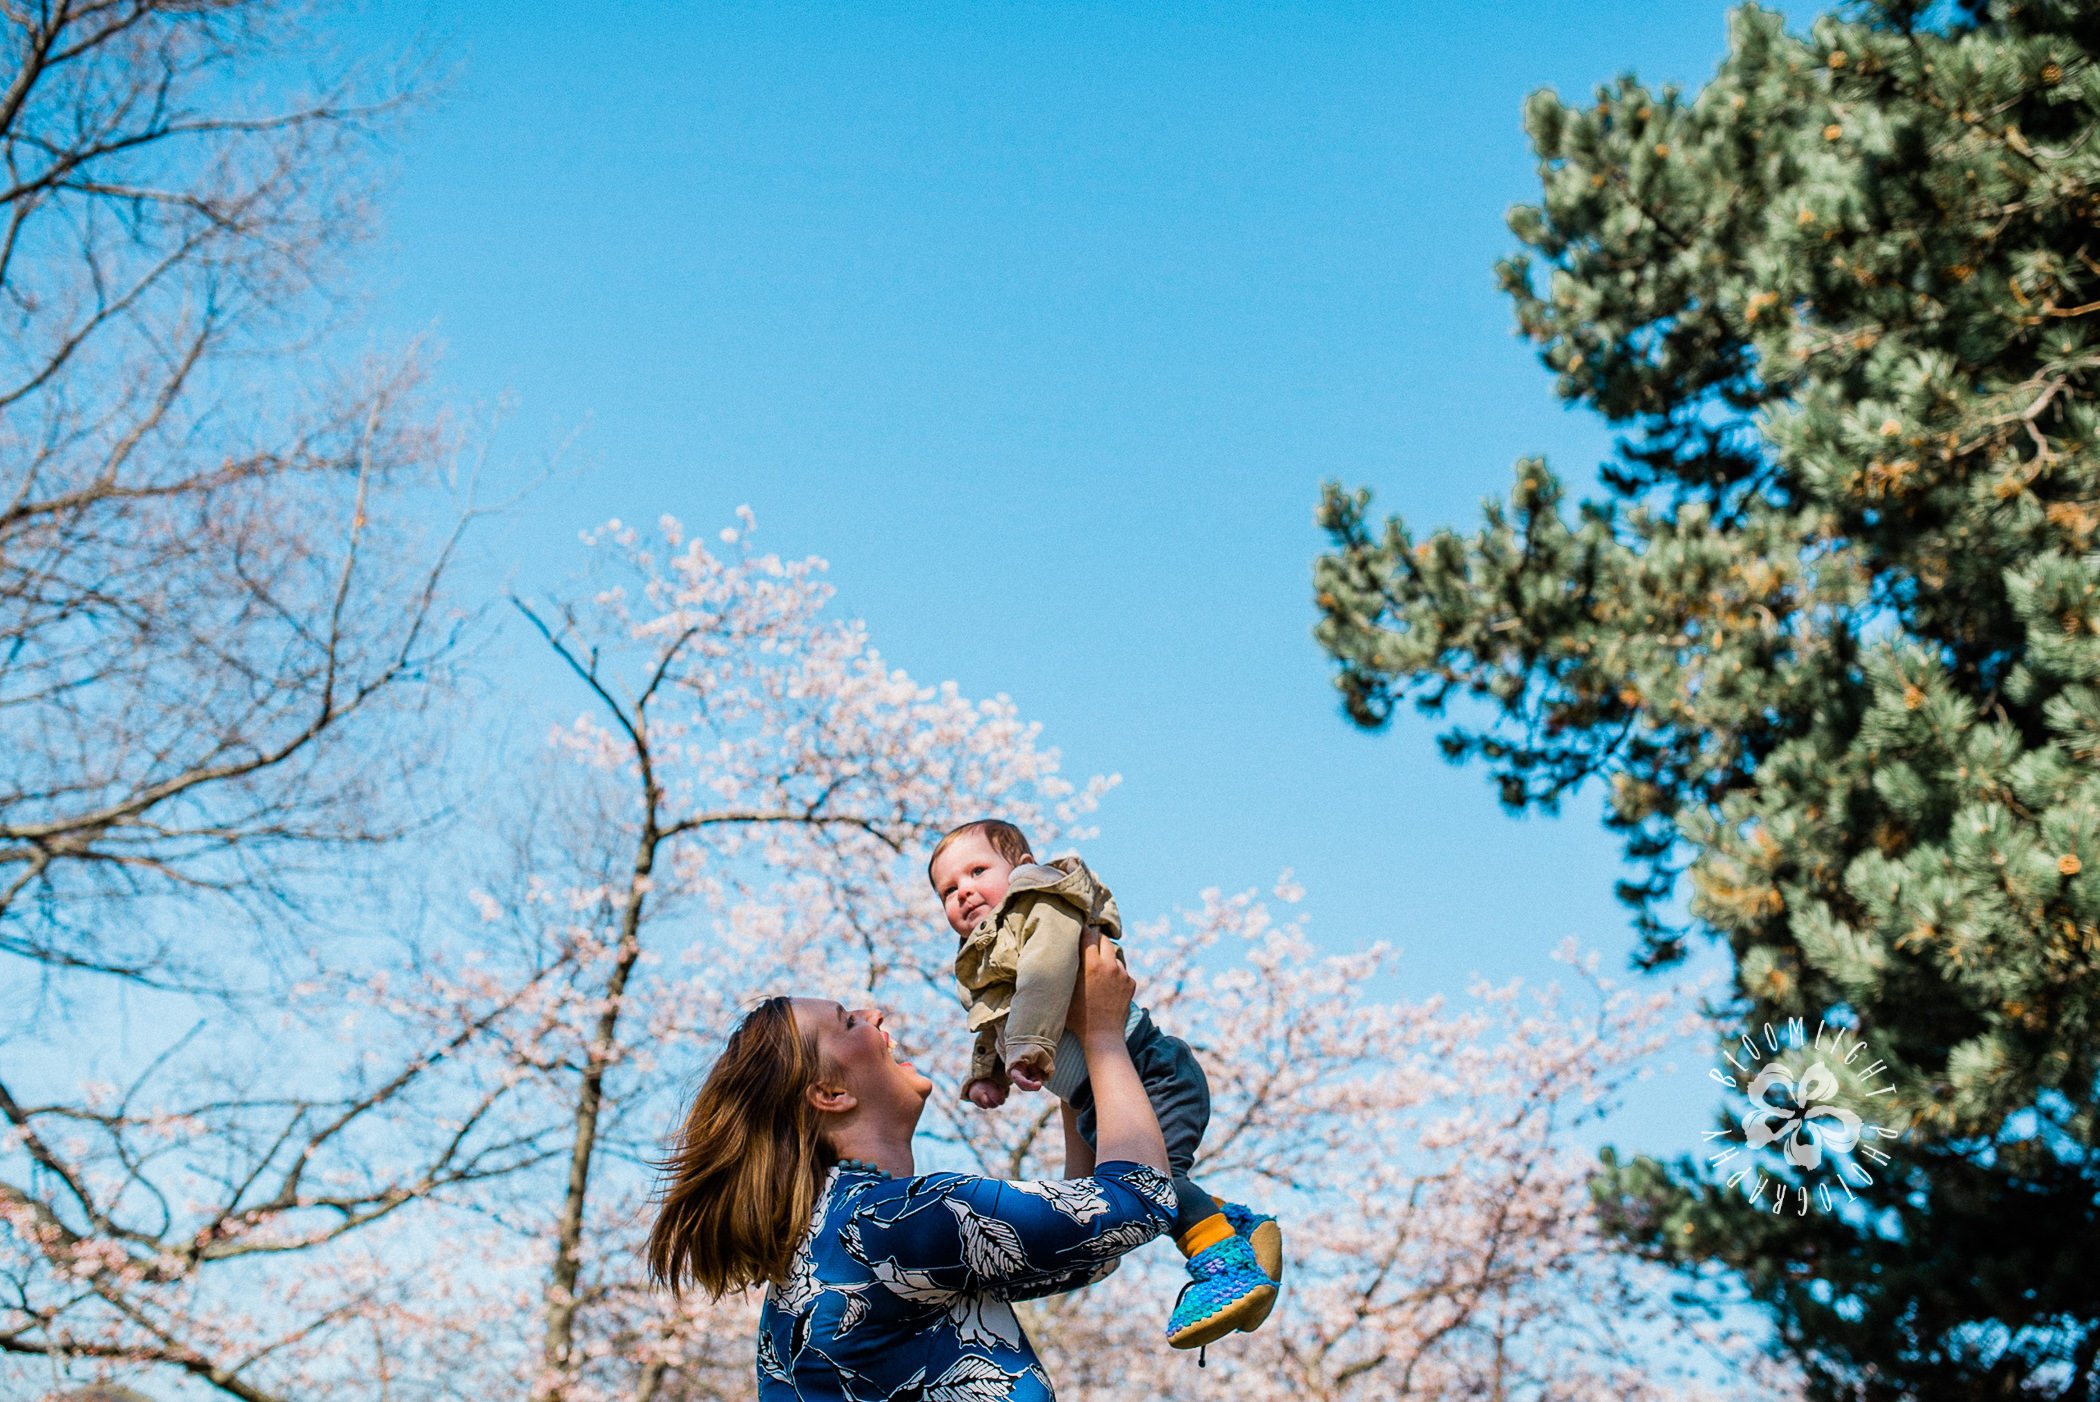 candid-photo-mother-baby-Toronto-cherry-blossom-High-Park.JPG